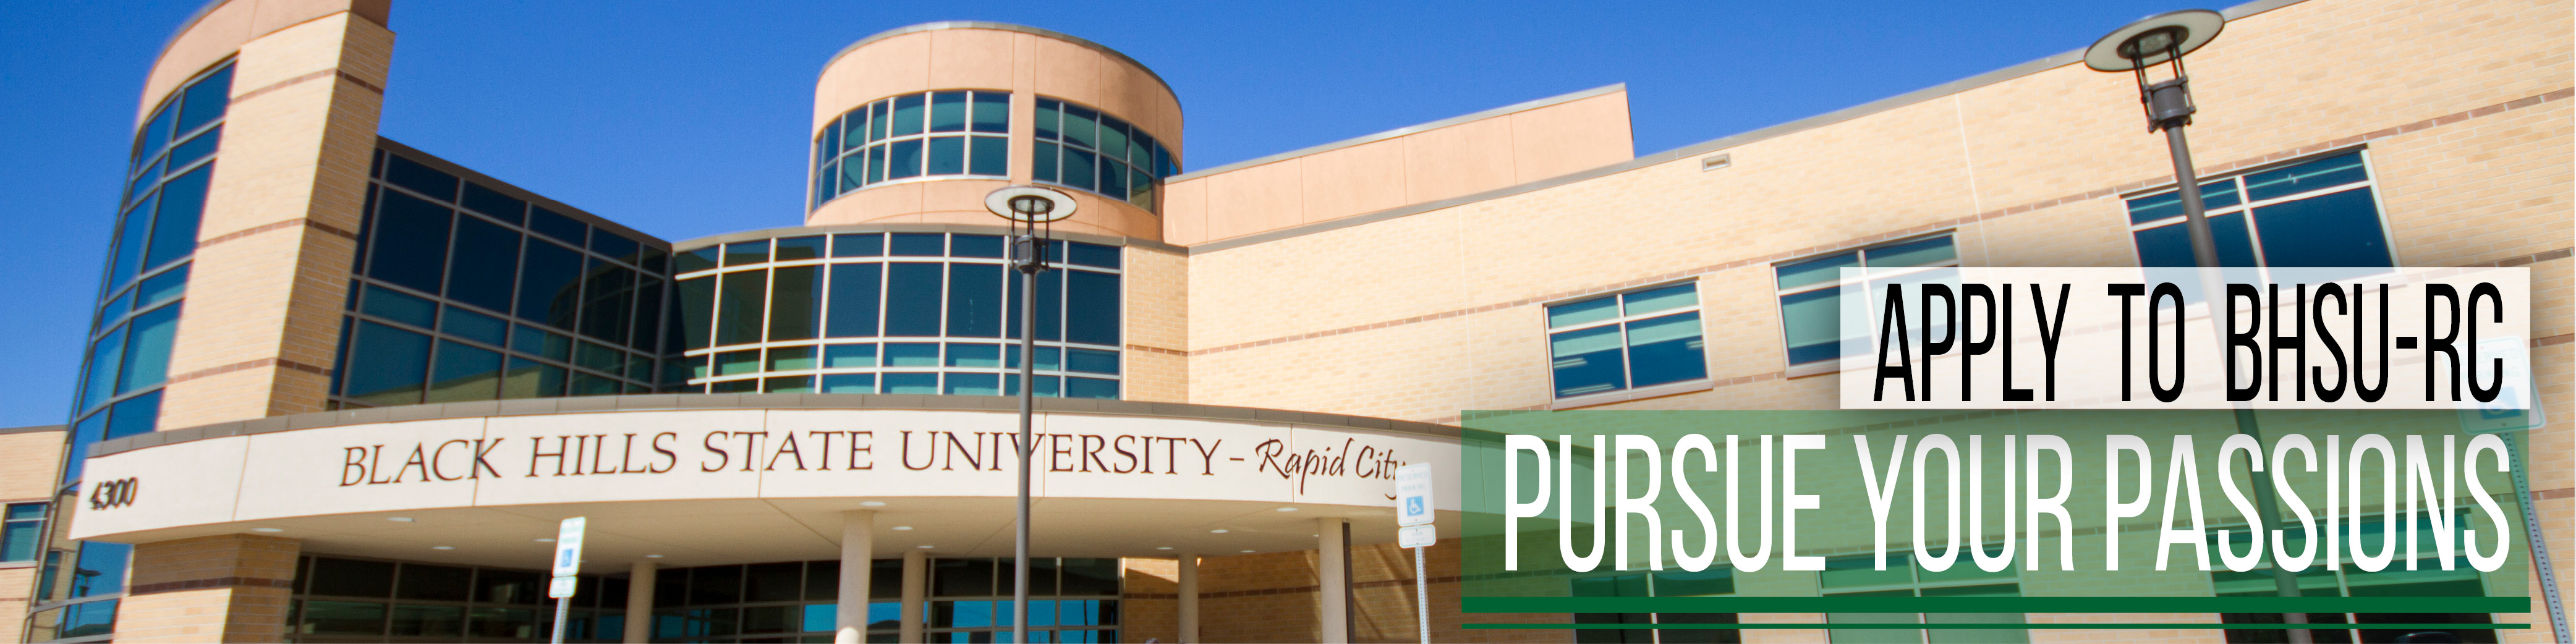 Apply to BHSU-Rapid City Today!